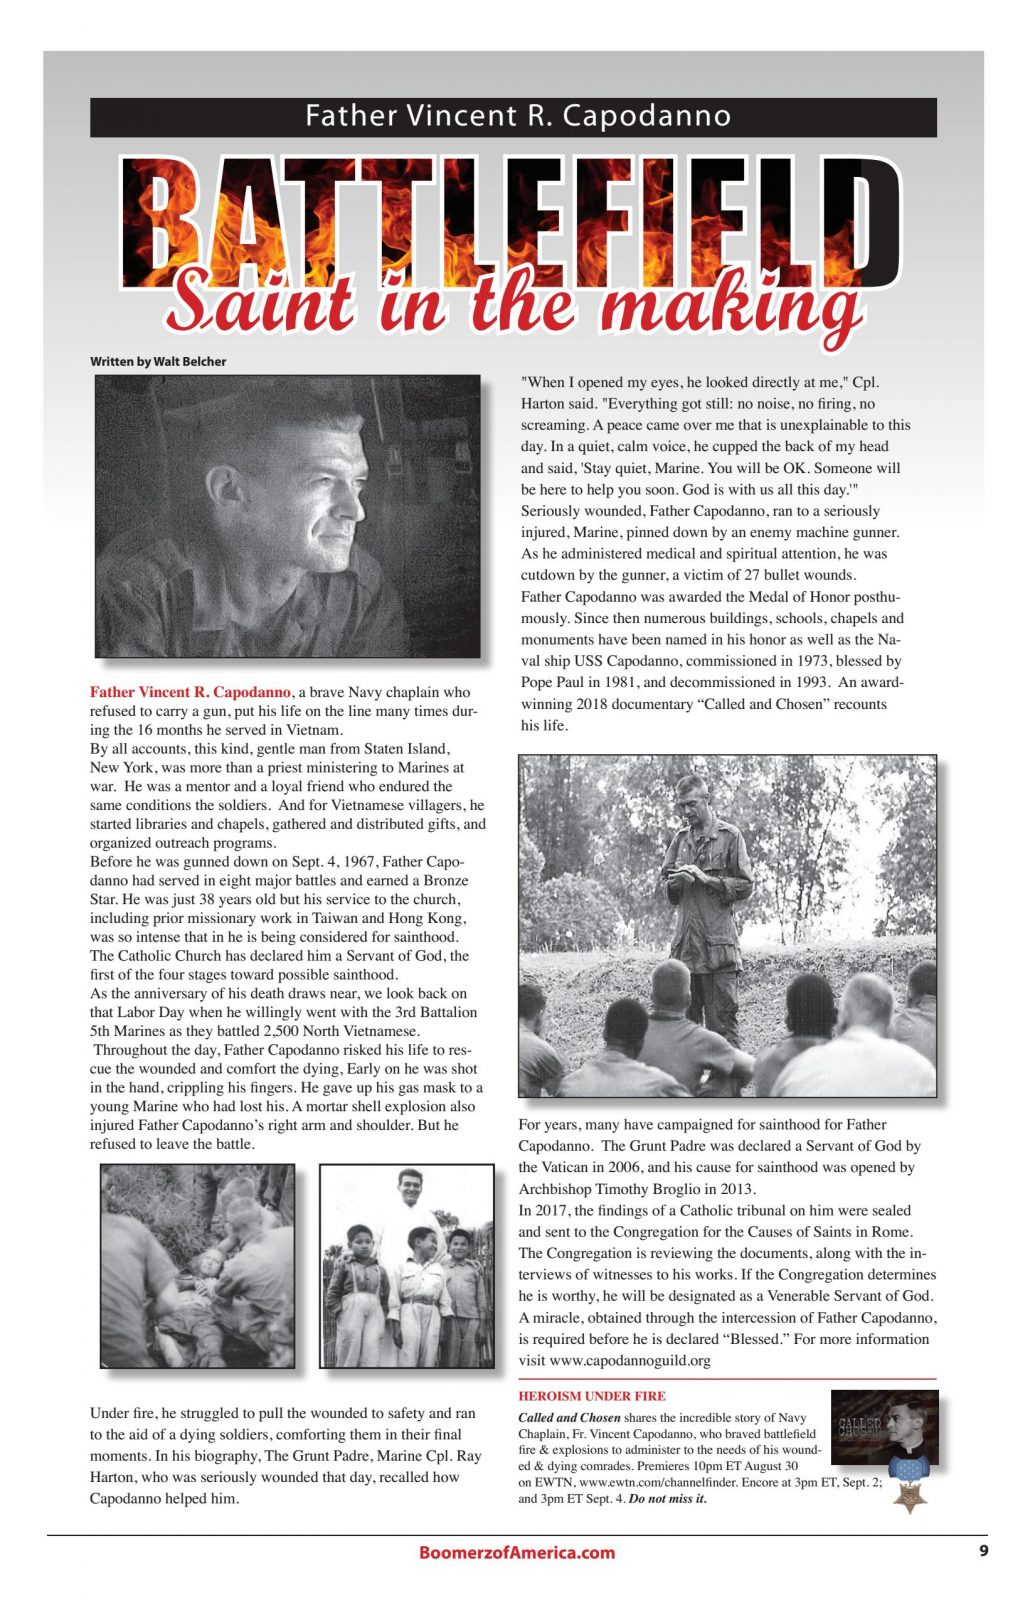 Boomerz August 2019 Saint in the making Father Vincent Capodanno